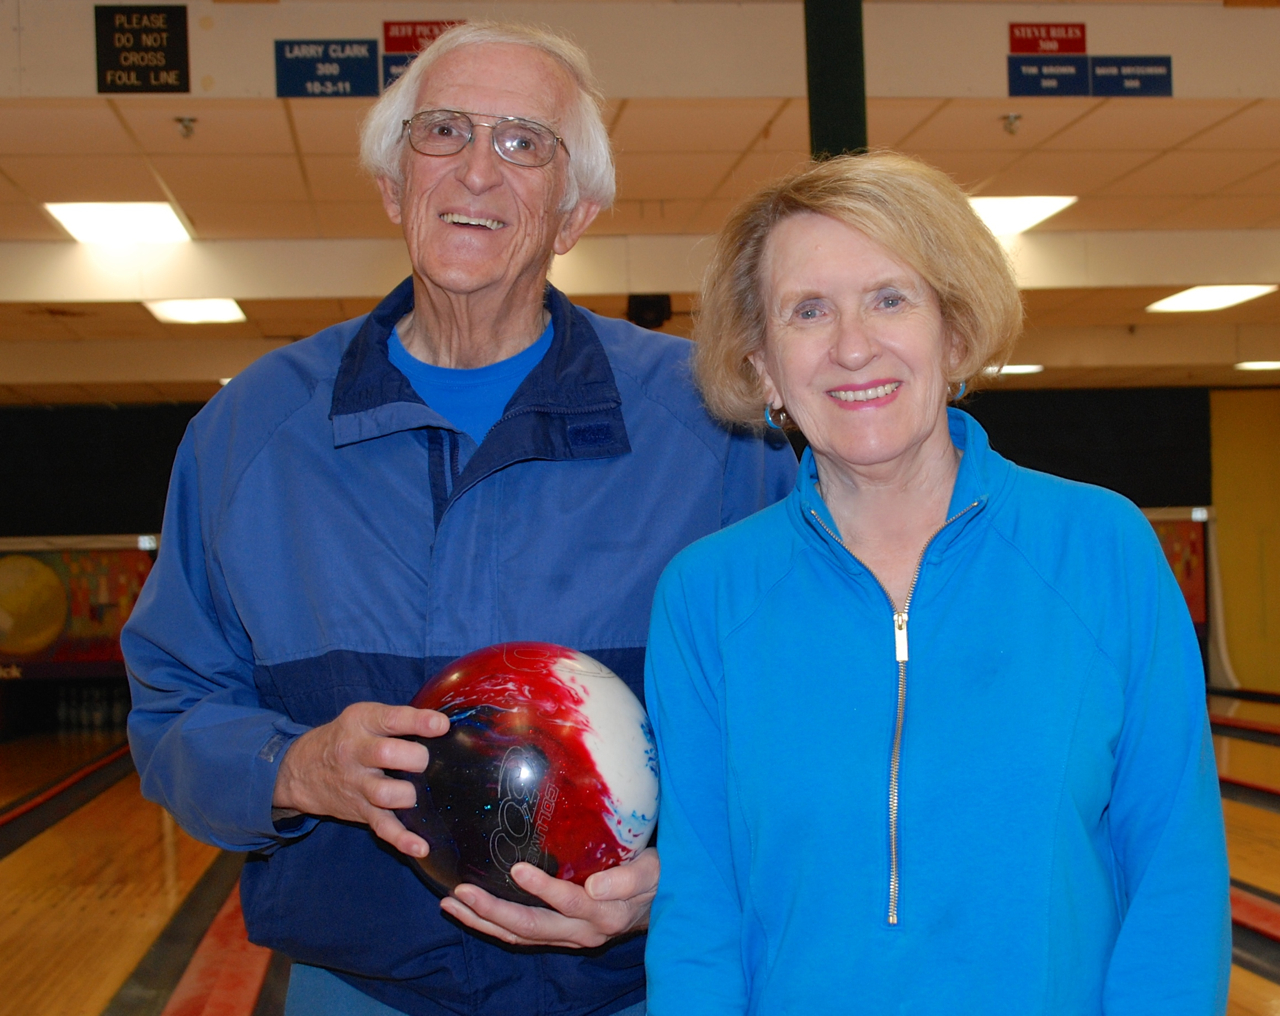 man and woman bowling at indian lane